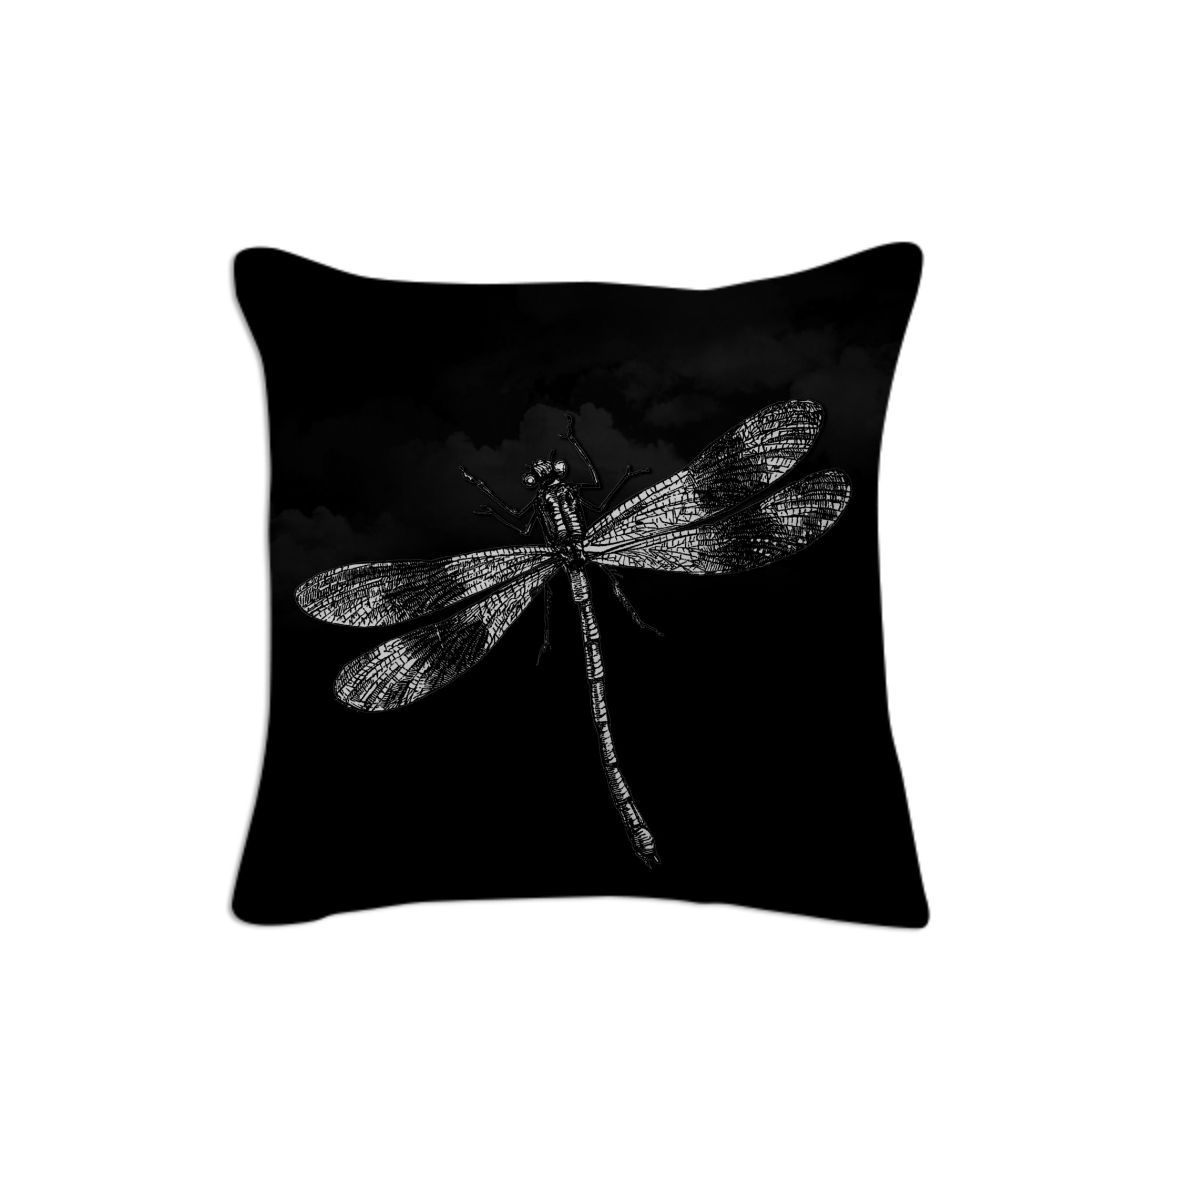 Dragonfly II, Pillow 2 from Print All Over Me  #black #art #vintage #dragonfly #animals #insects #blackandwhite #goth #piaschneider #ateliercolourvision #paom #pillow #cotton #artprint #cushion #home #decor #designerpillow #gift #giftidea